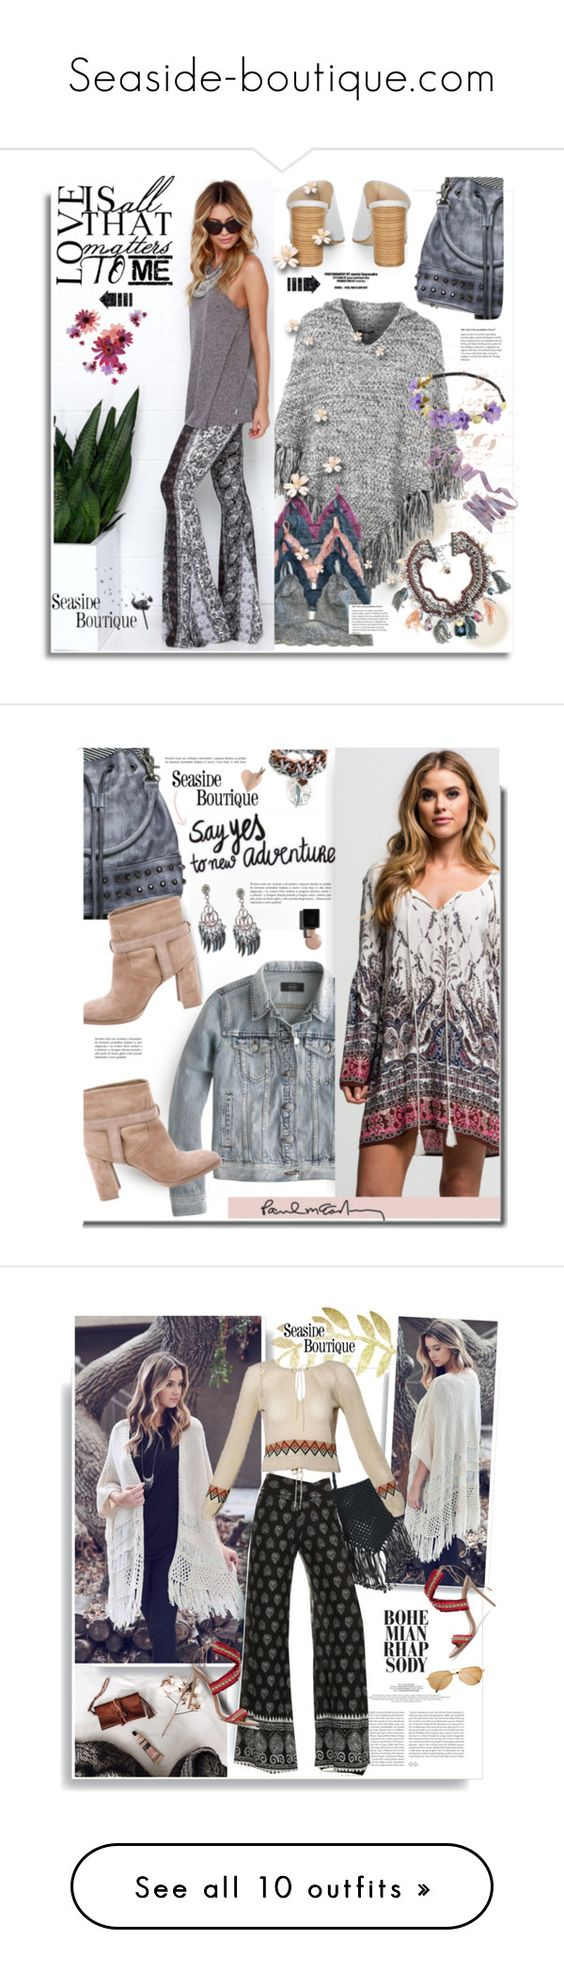 """Seaside-boutique.com"" by hamaly ❤ liked on Polyvore featuring boho, bohochic, vest, seasideboutique, Topshop, Monsoon, Zodaca, ootd, bag and pants"